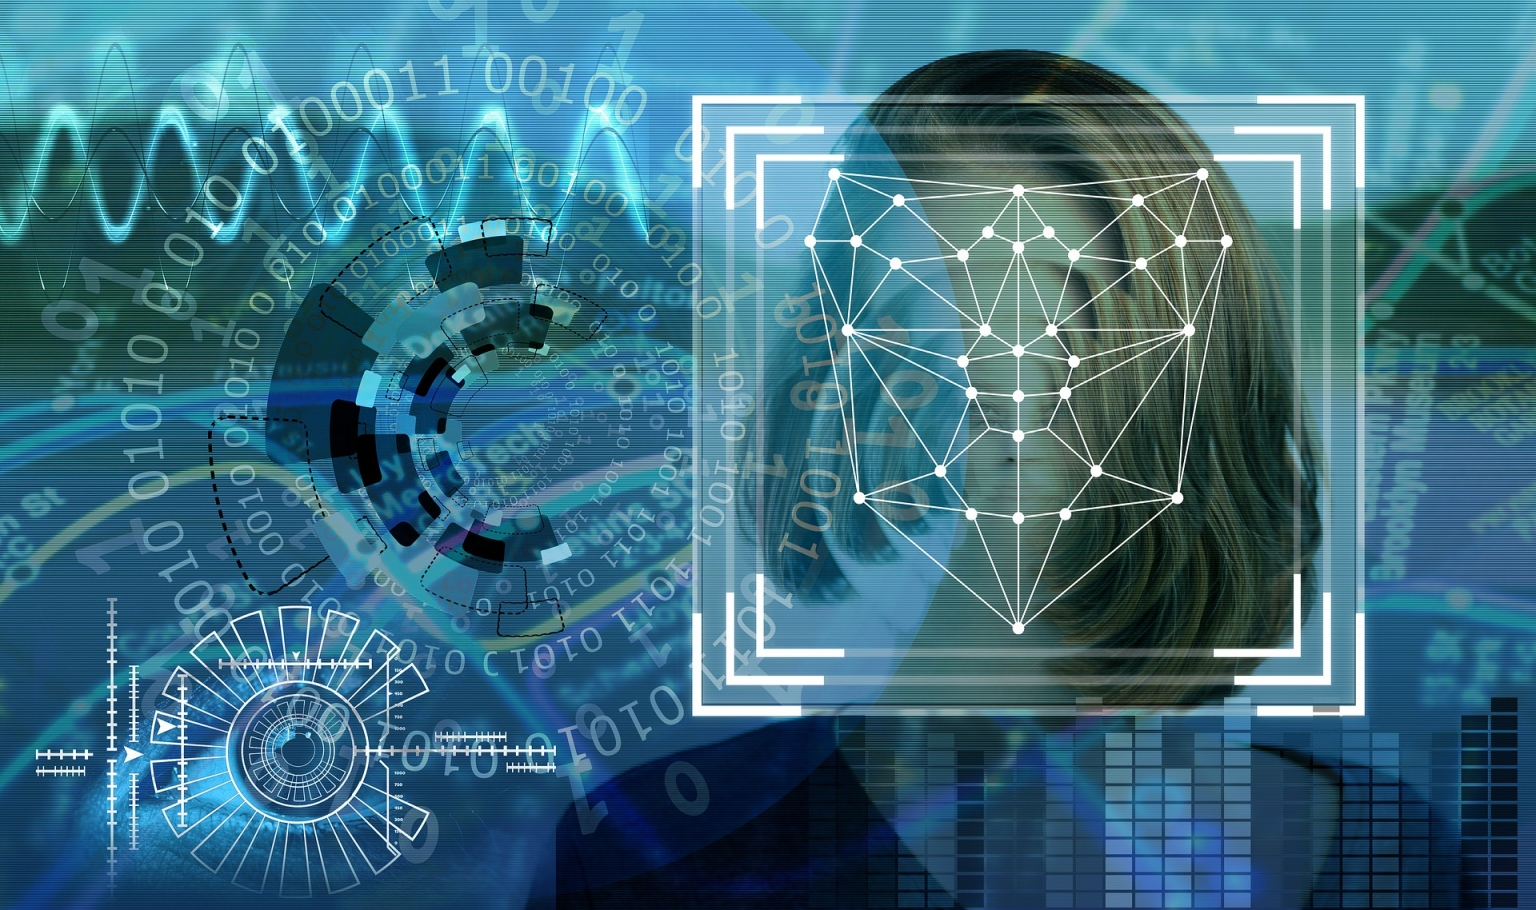 DHS Awards $2M for Small Businesses to Develop Machine Learning for Detection Technologies